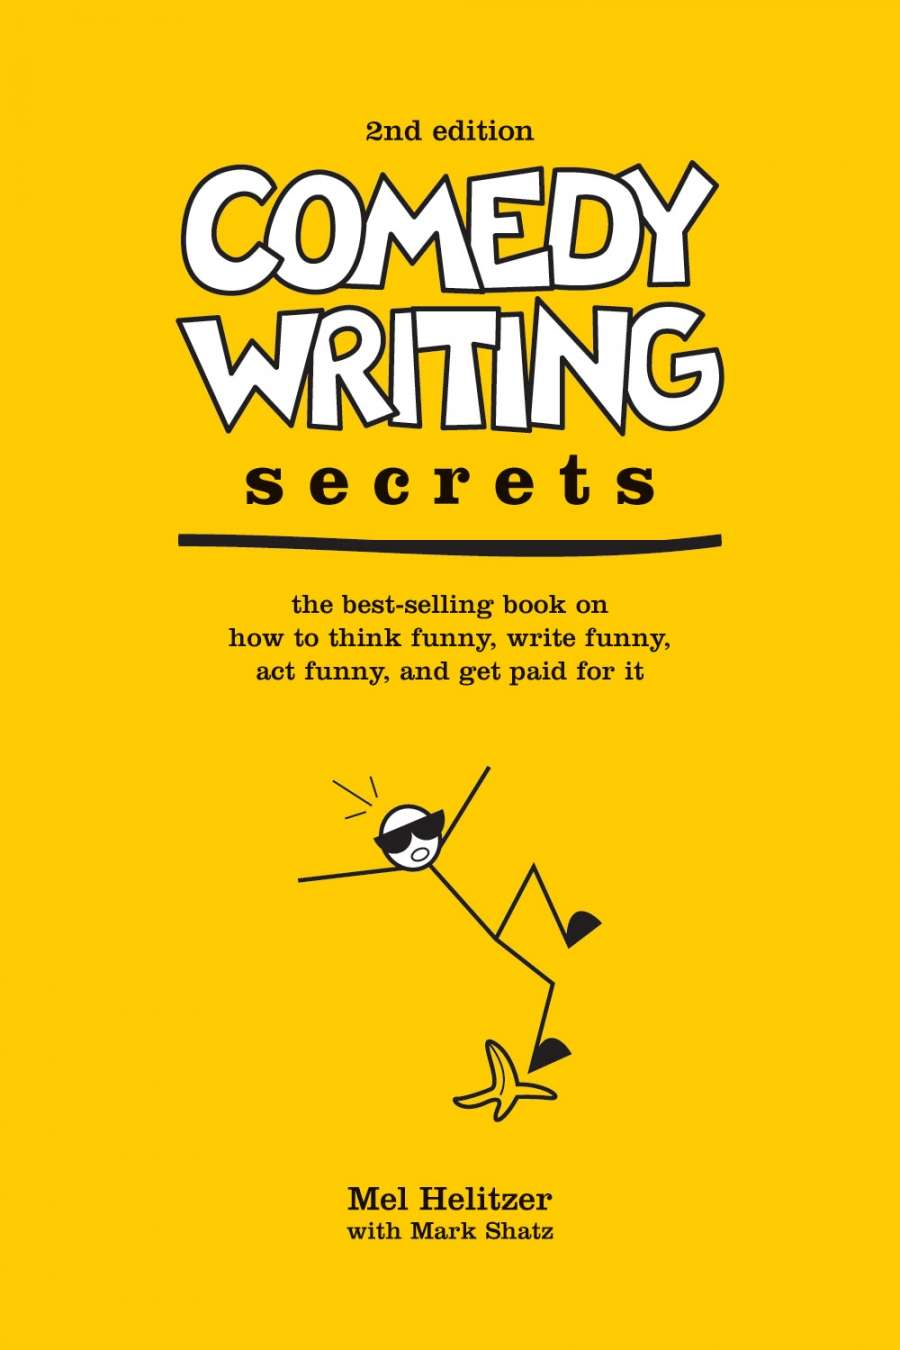 The 4 Rules of Comedy Writing For Screenwriters